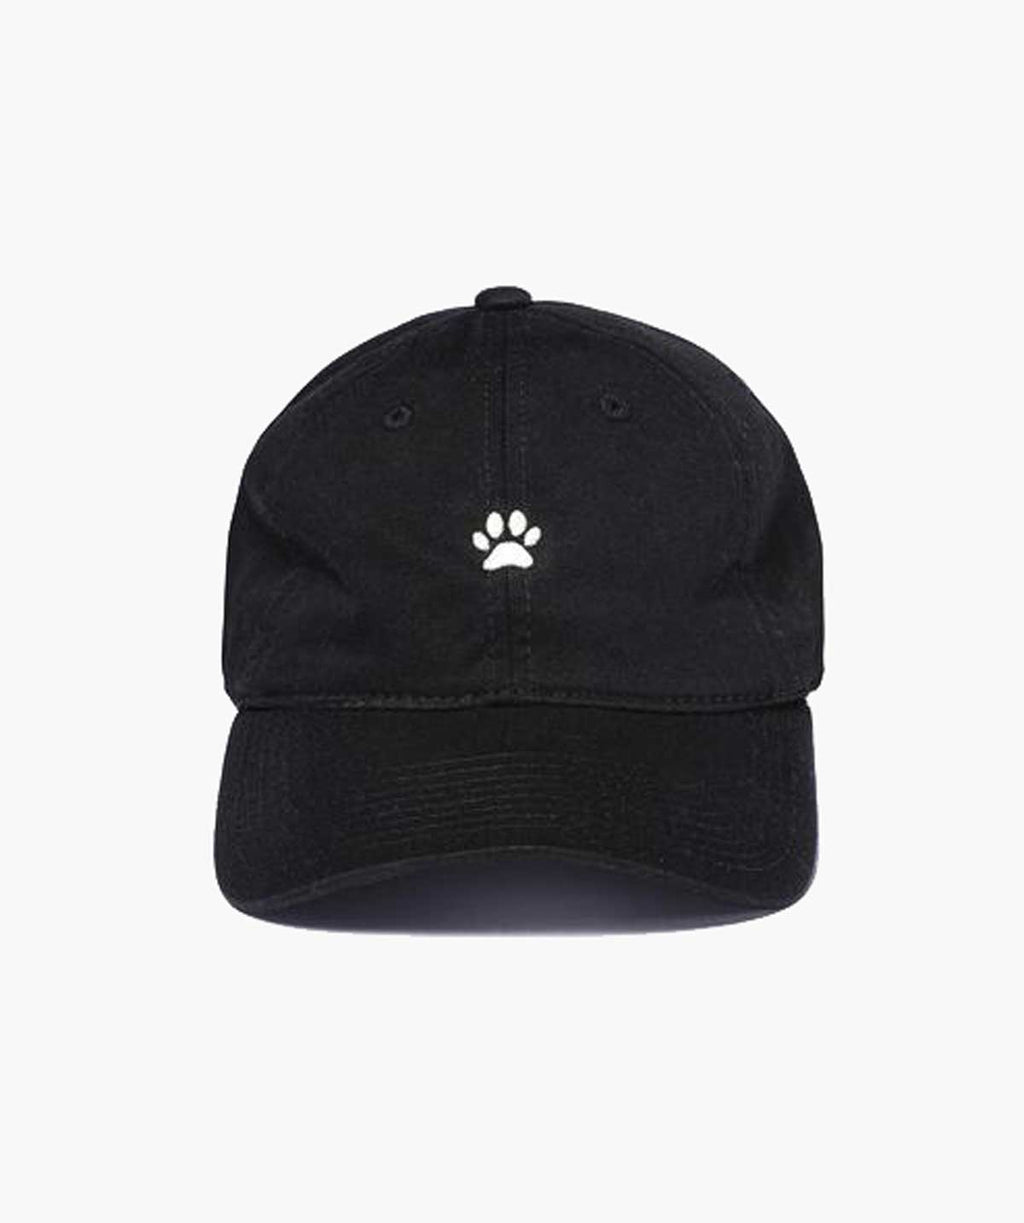 Dad Hat - Black/White - MODLEASH